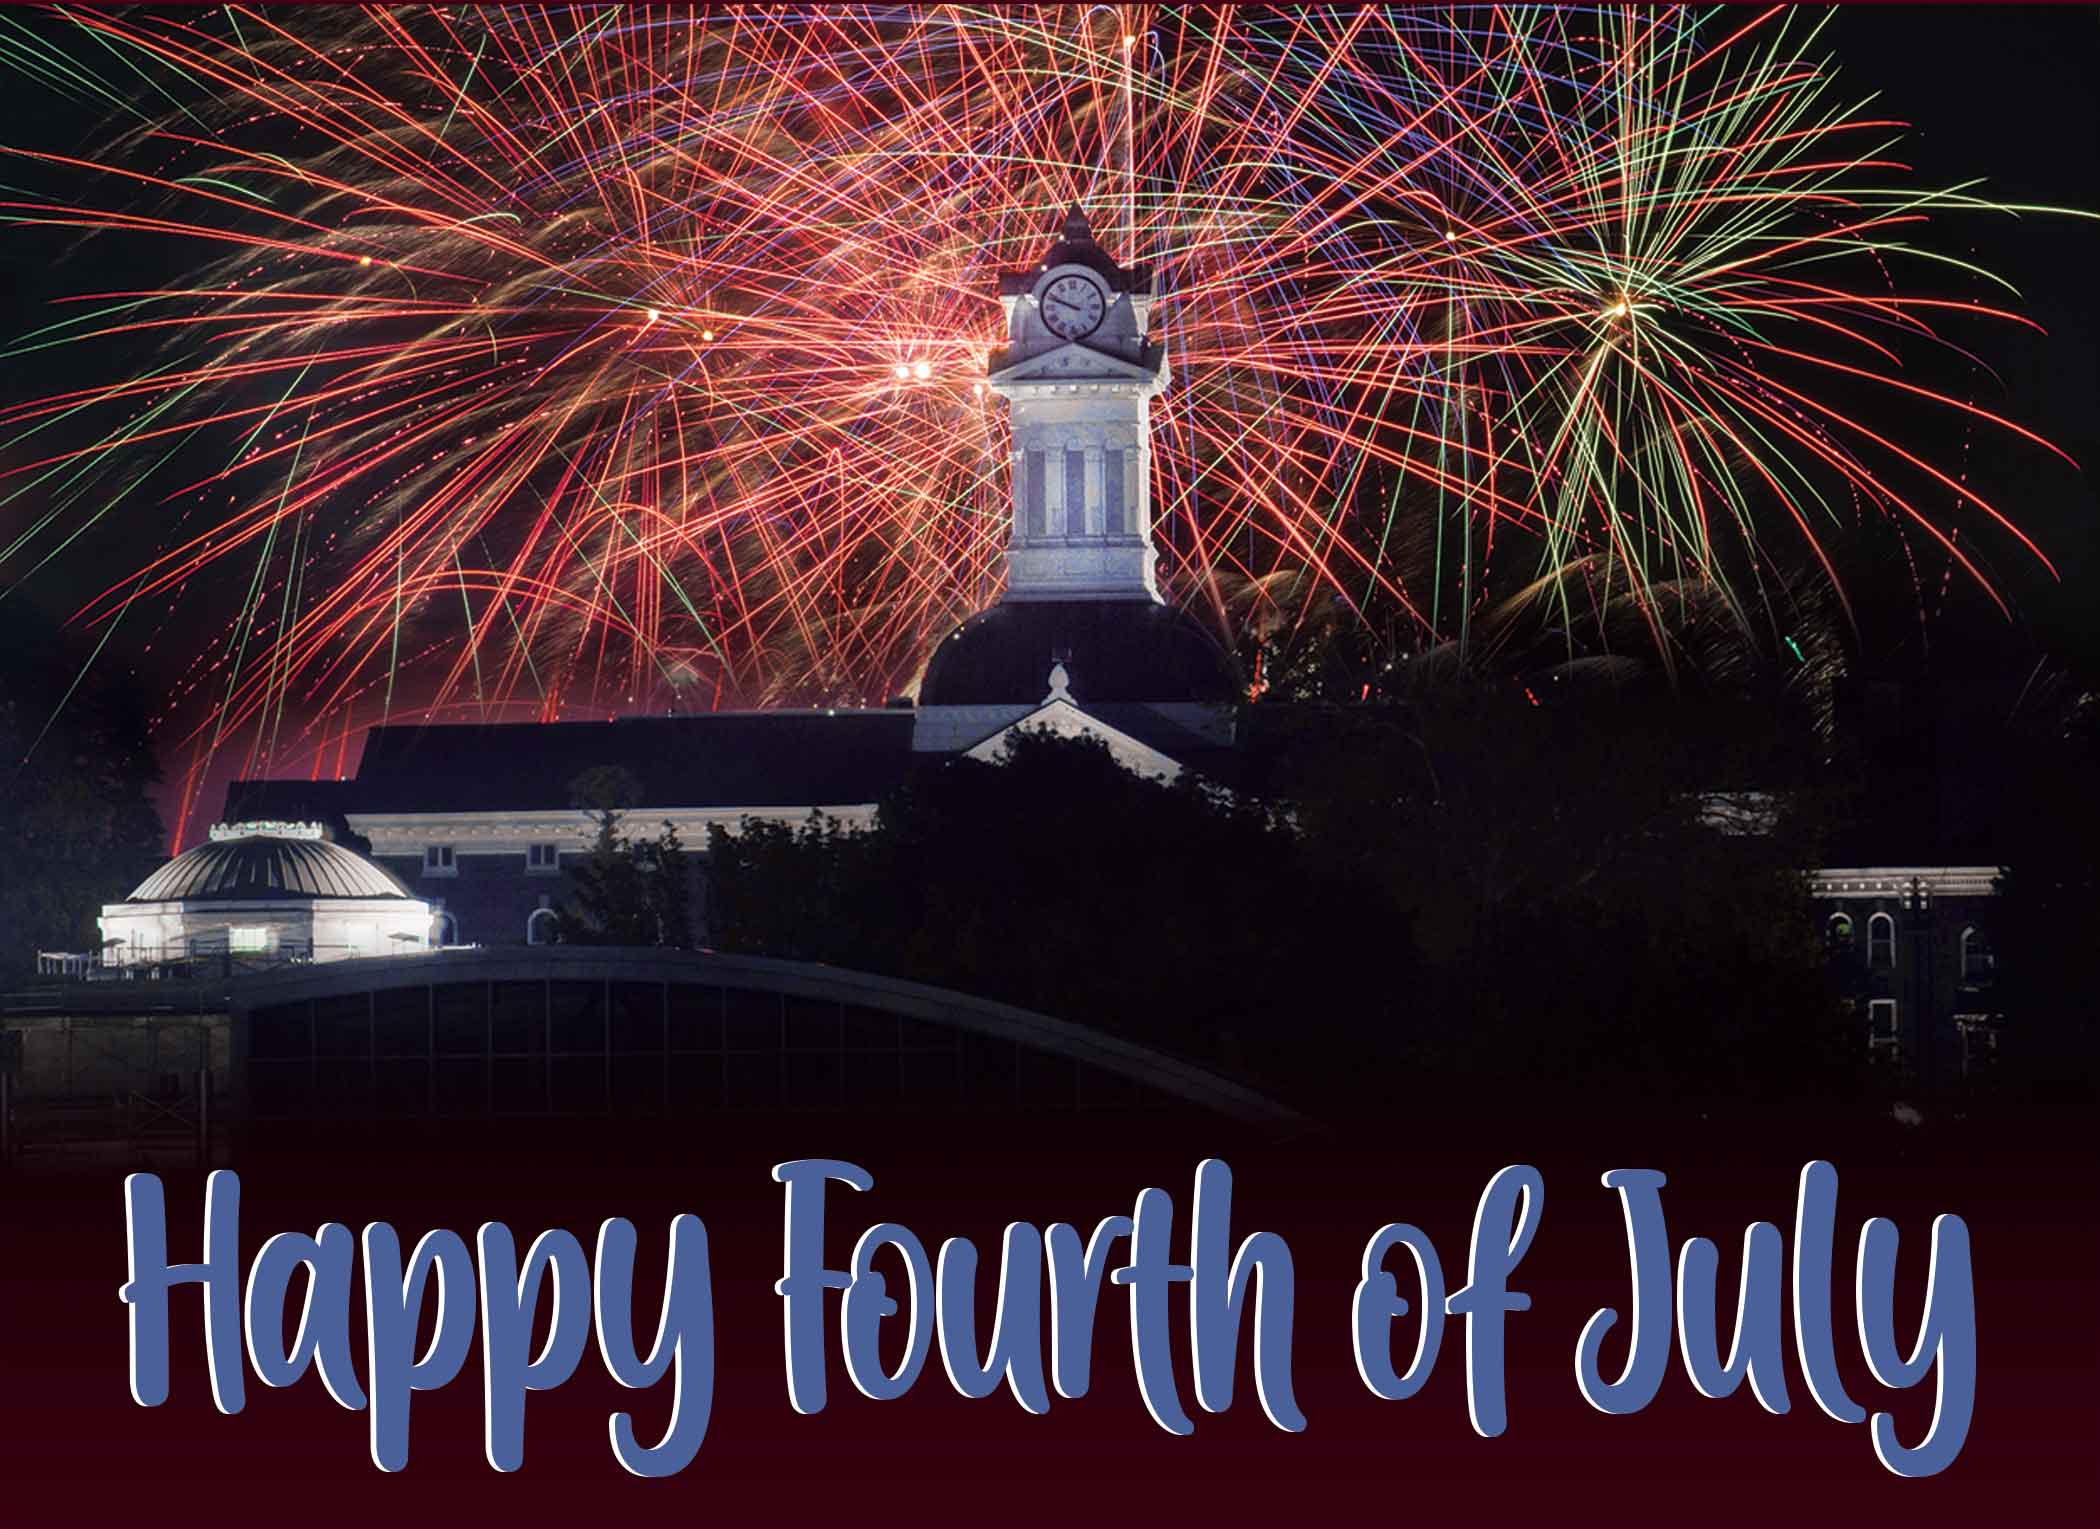 Fireworks illuminate the night sky with Old Main's clocktower in the foreground. The words Happy Fourth of July is written in bold, blue across bottom of image.